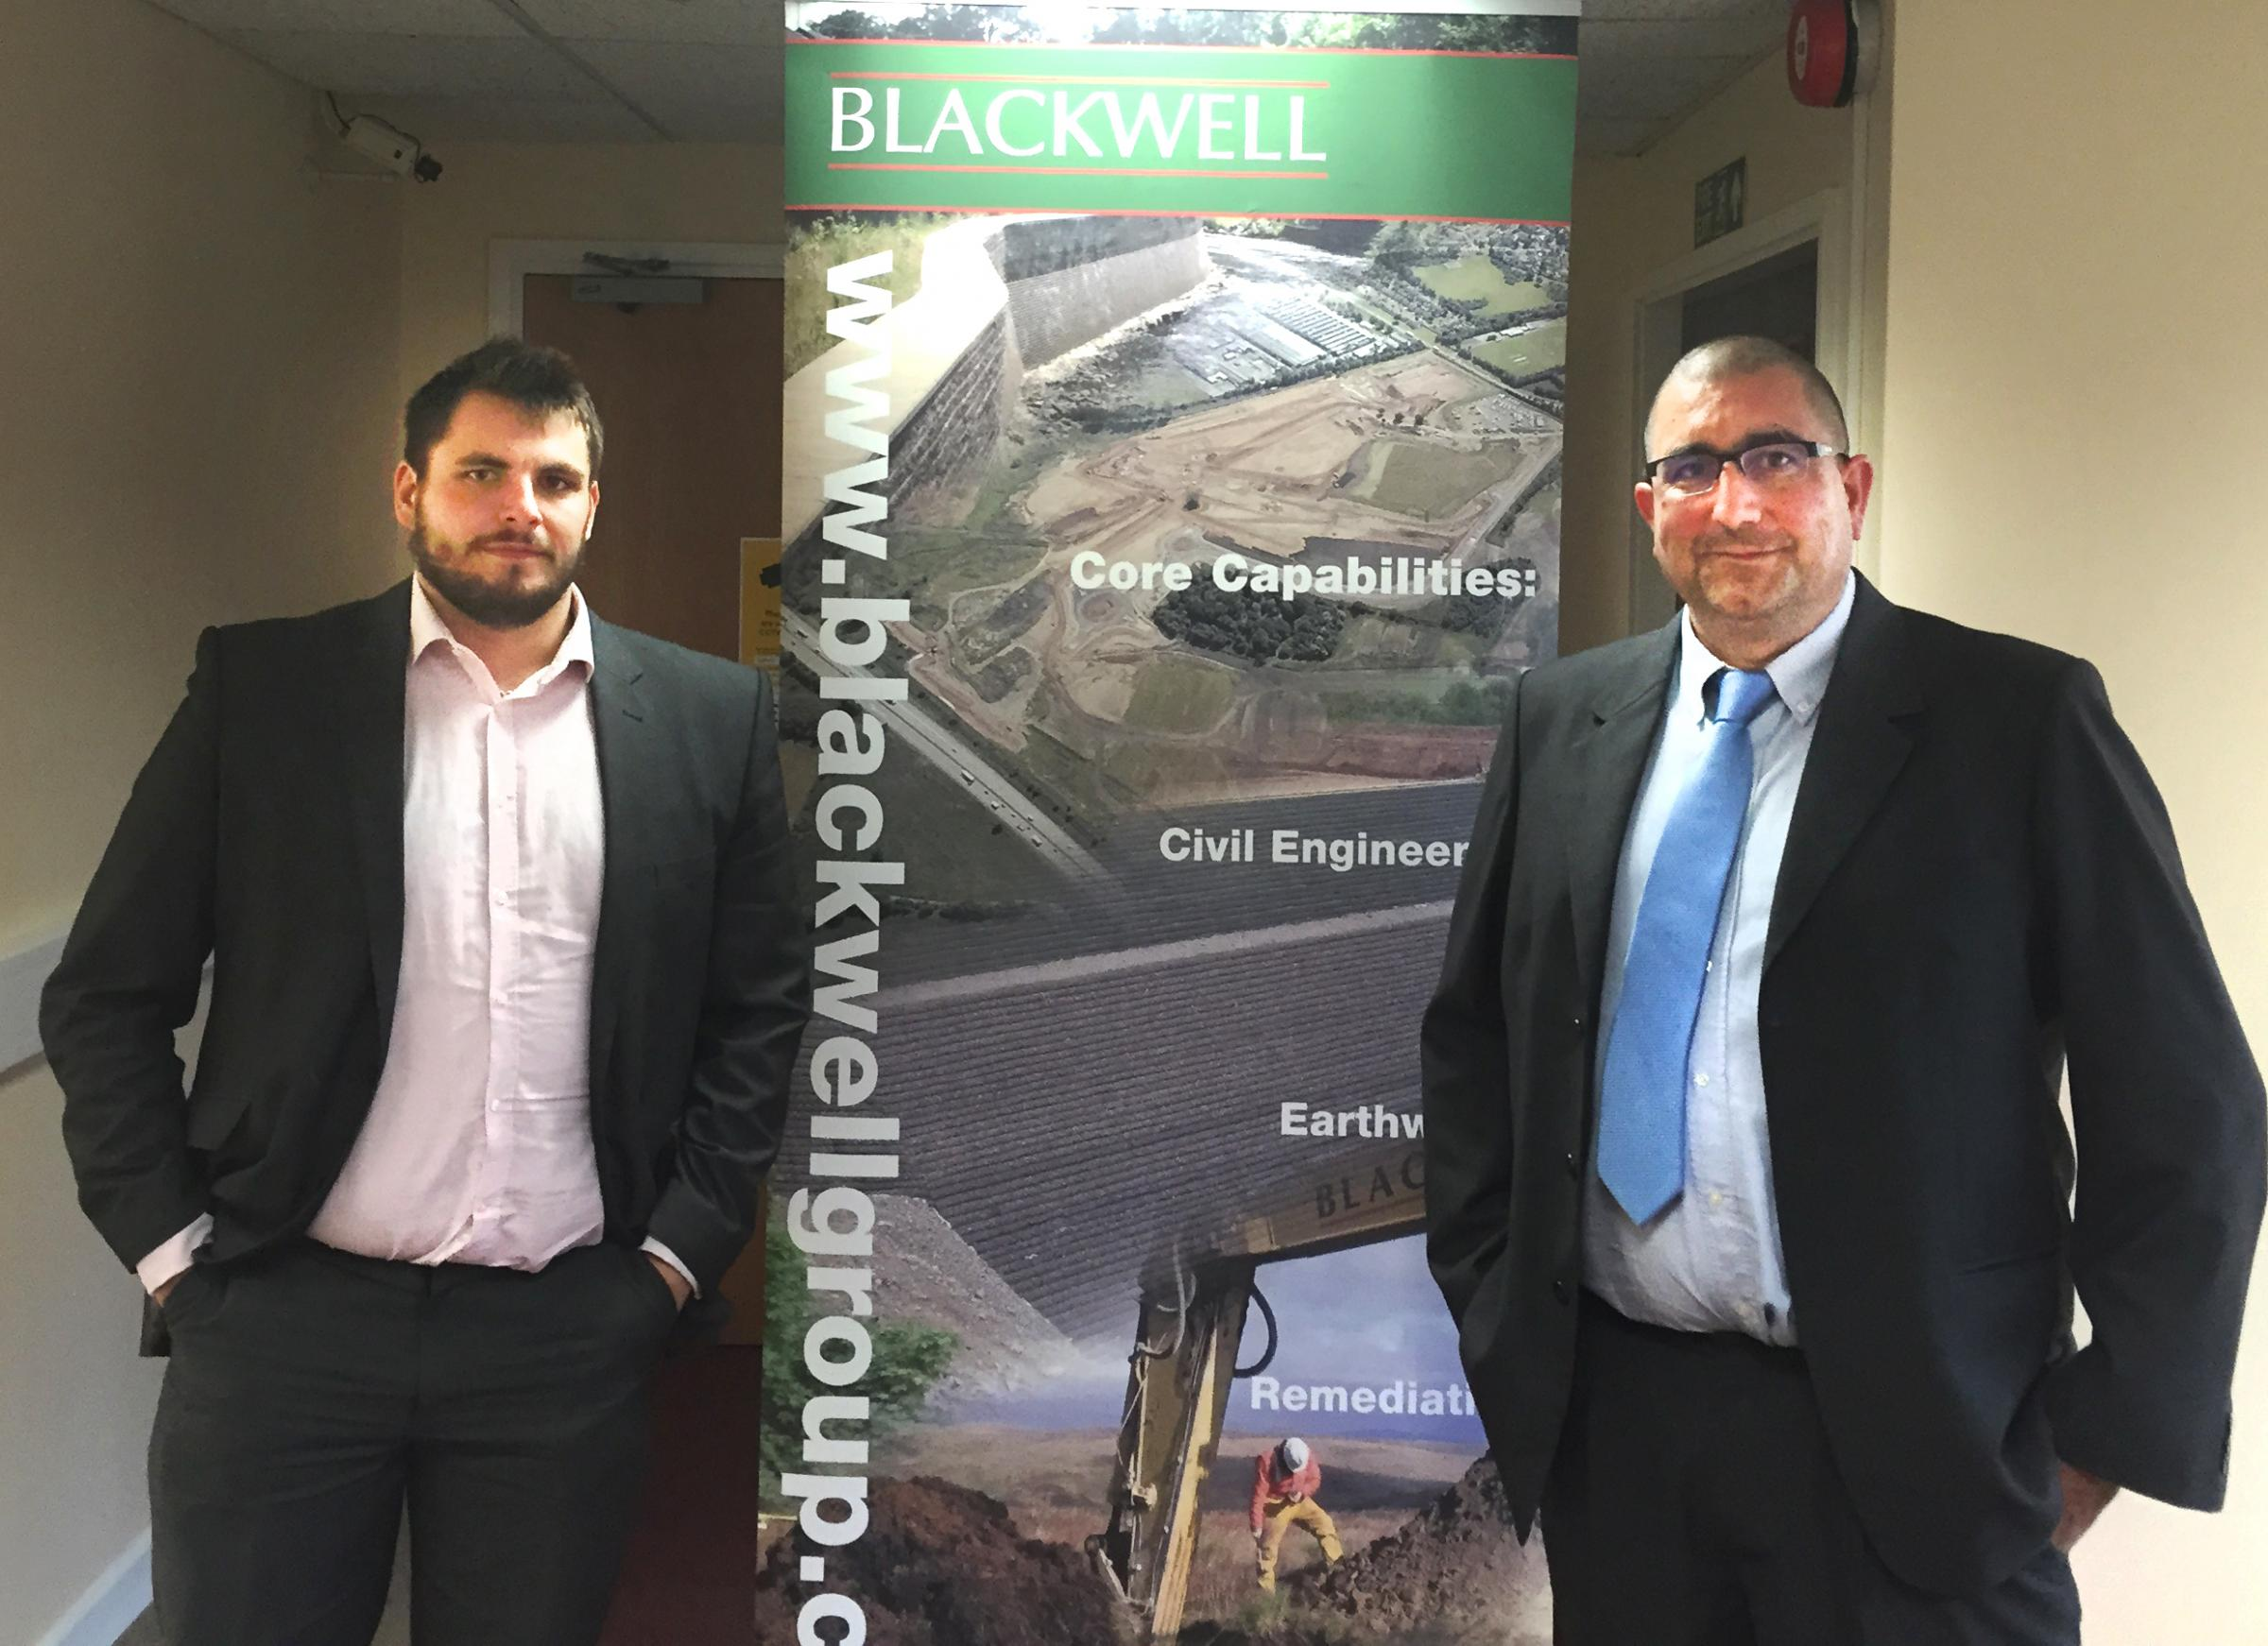 Contracts: Justin Downer and Gavin Chandler, of contractor CA Blackwell